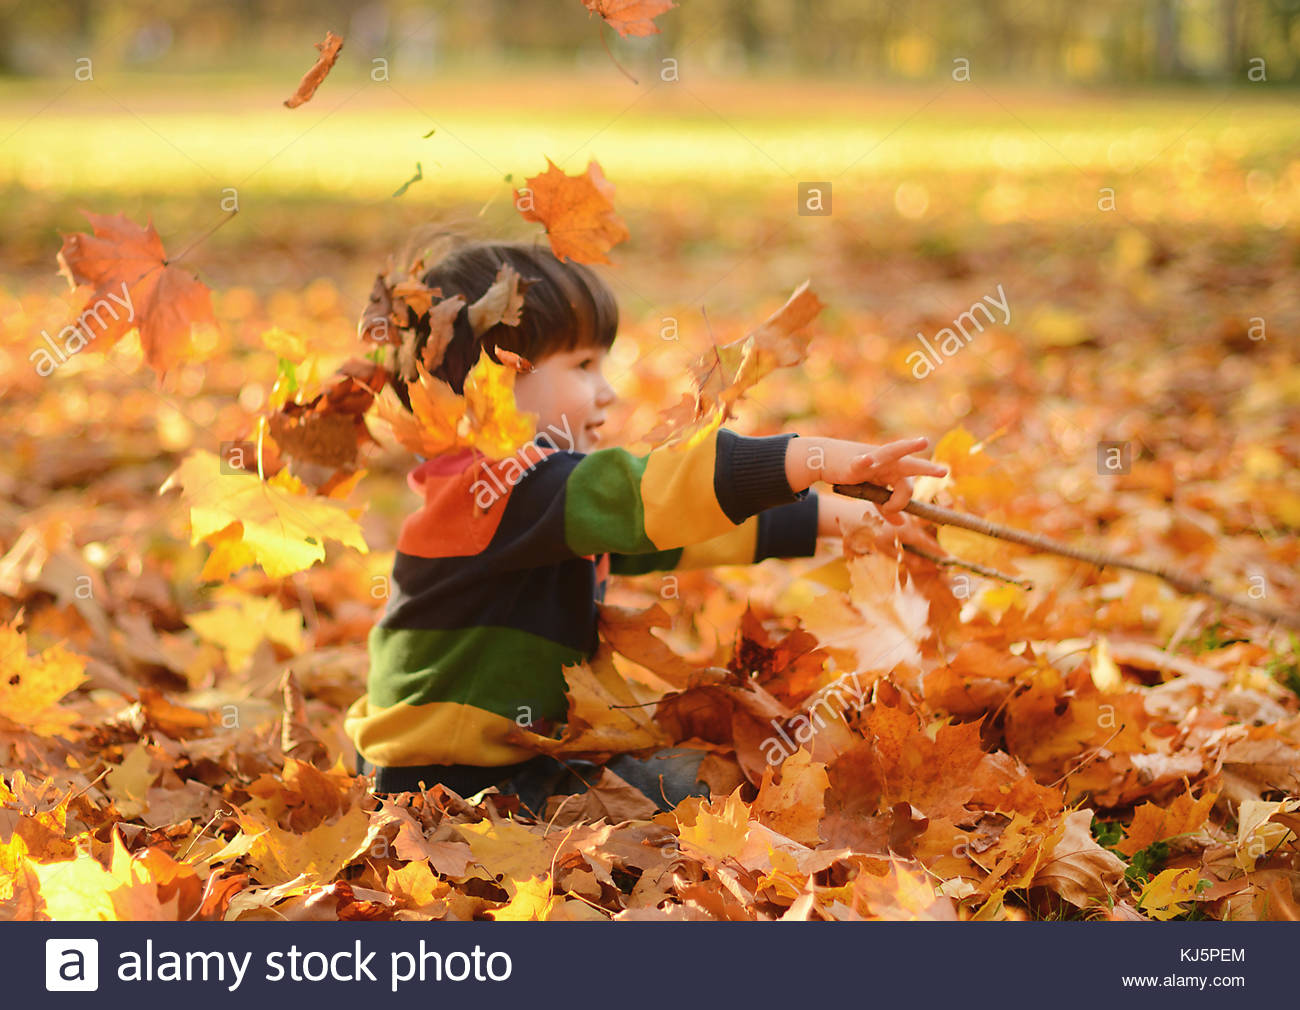 Toddler Playing with leafs Photo Stock